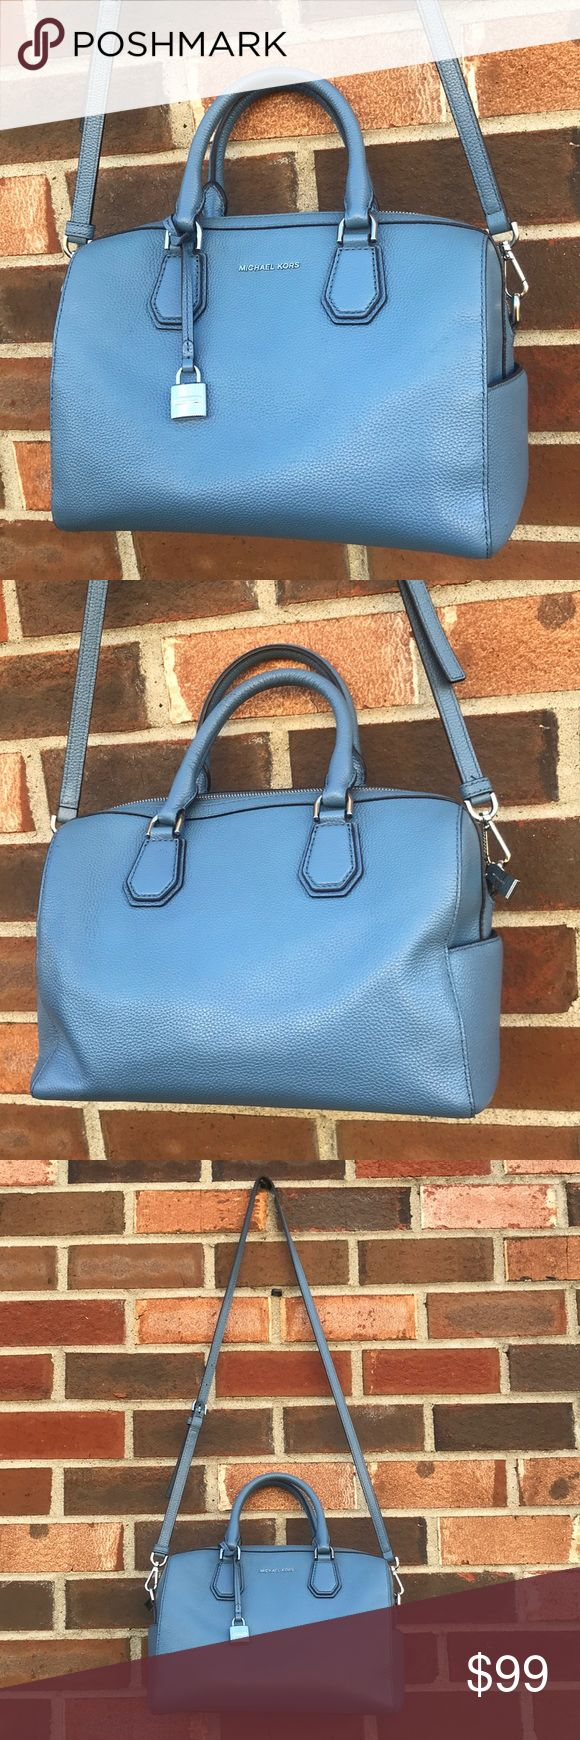 "PRICED TO SELL! Michael Kors Mercer duffle Purse Beautiful MK Purse! Denim color, I believe. Adjustable shoulder strap and silver hardware. Two button snap side pockets. Priced to sell! Roomy and practical :) measures approx 11 1/2""x9""x7"". Shows some signs of use, see last photo for details! Small scuffs, metal feet show scuffs, and color rub in certain spots. Not noticeable when using, only when looking for them. Interior shows minor use and overall very clean! Michael Kors Bags Satchels"